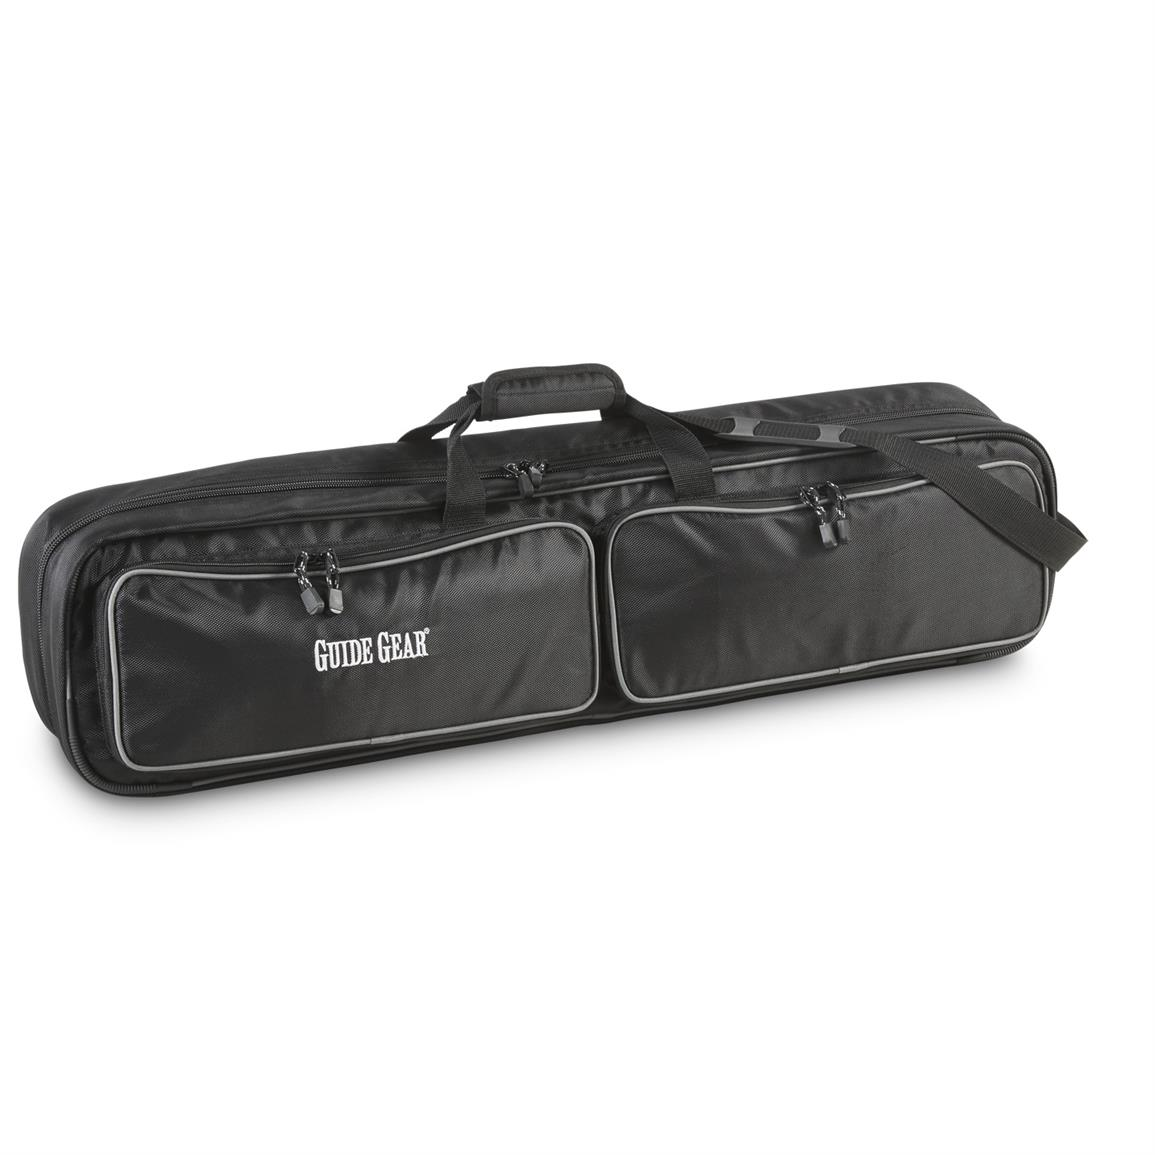 Guide gear ice fishing rod case 6 rod 671083 ice for Ice fishing gear list